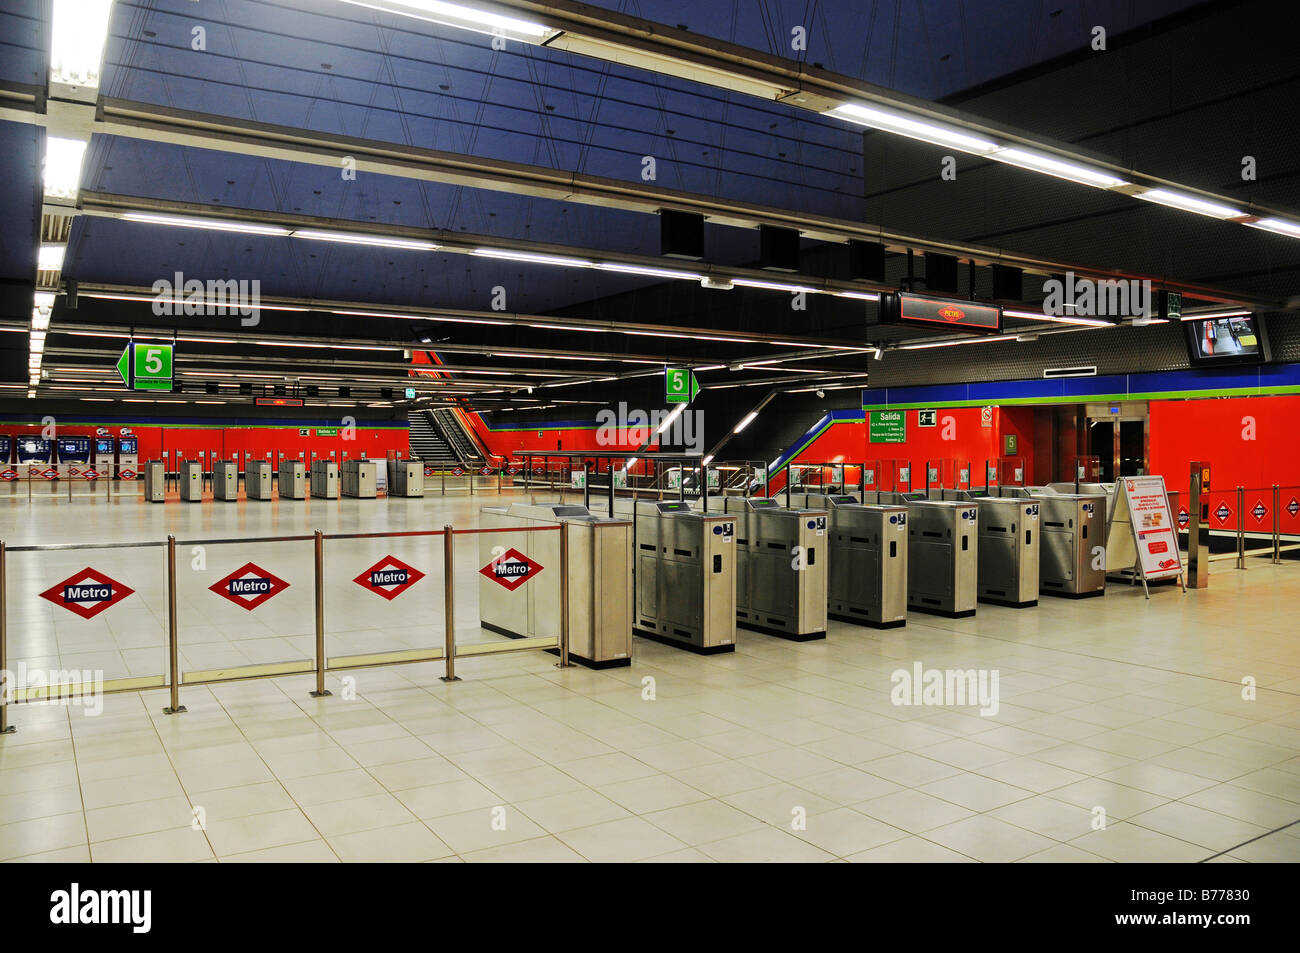 Entrance barriers, deserted, Metrostation El Capricho, Madrid, Spain, Europe - Stock Image